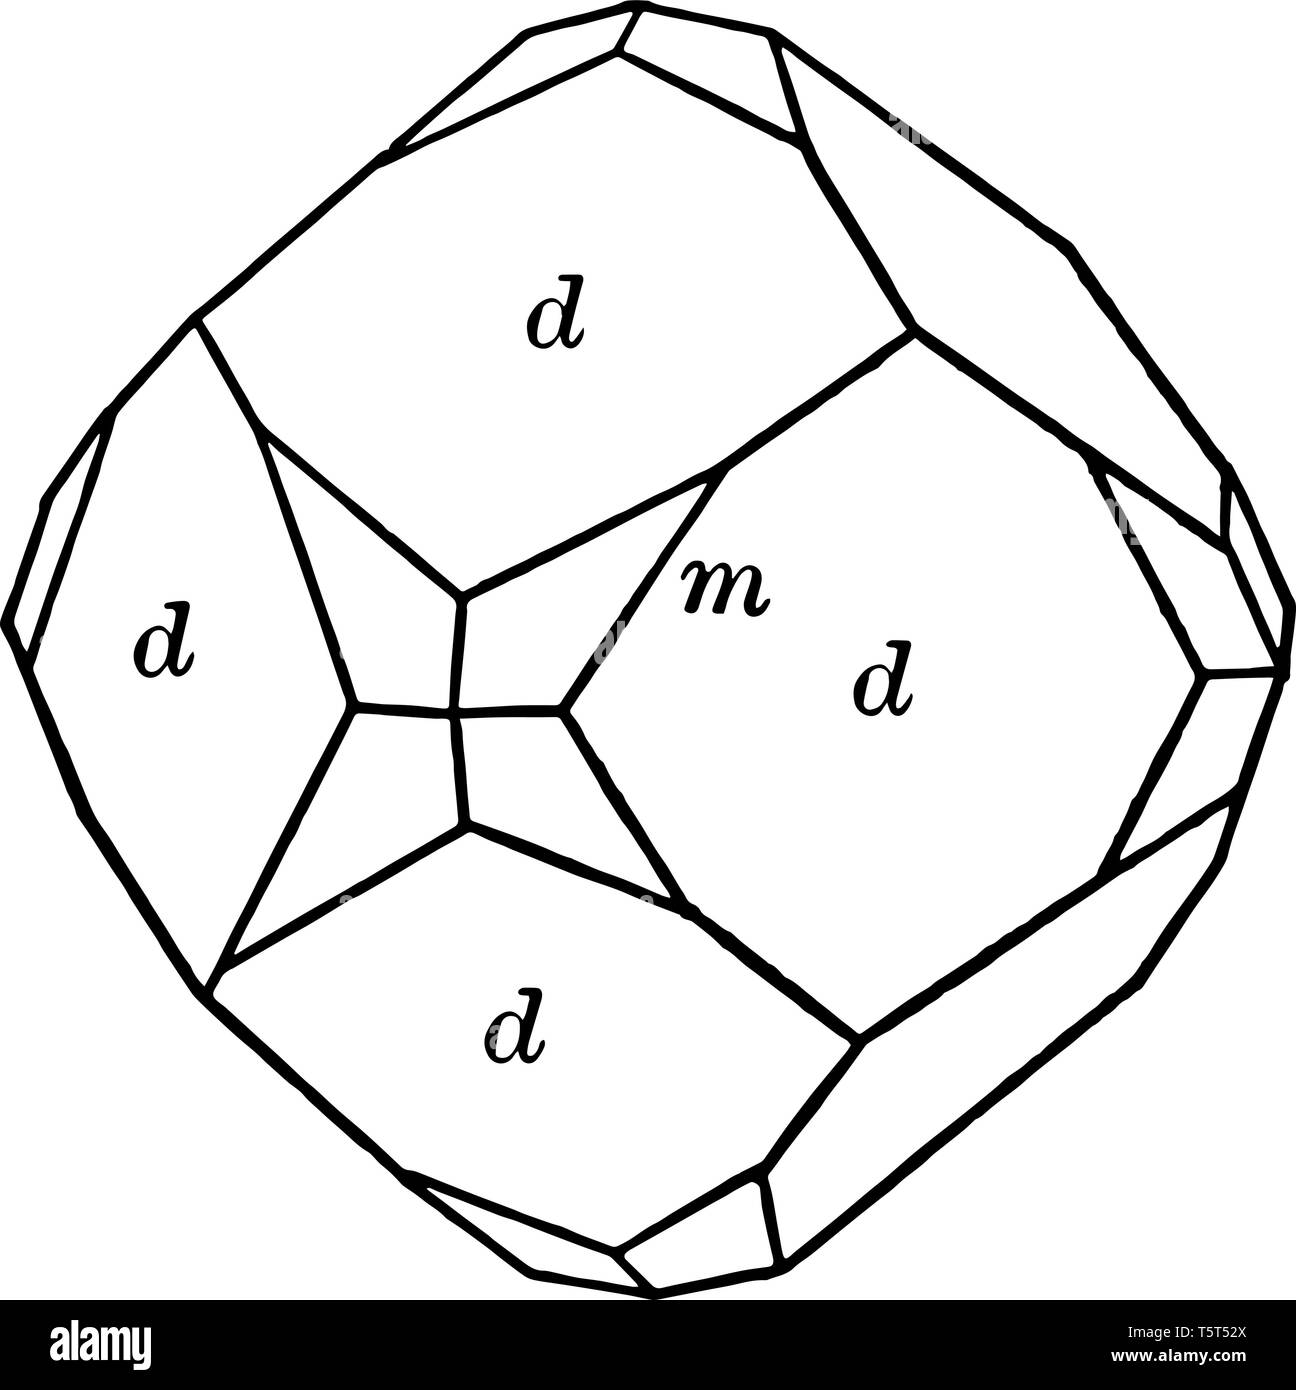 hight resolution of a diagram of dodecahedron and trapezohedron the dodecahedron is any polyhedron with twelve flat faces while the trapezohedron is a solid figure whos